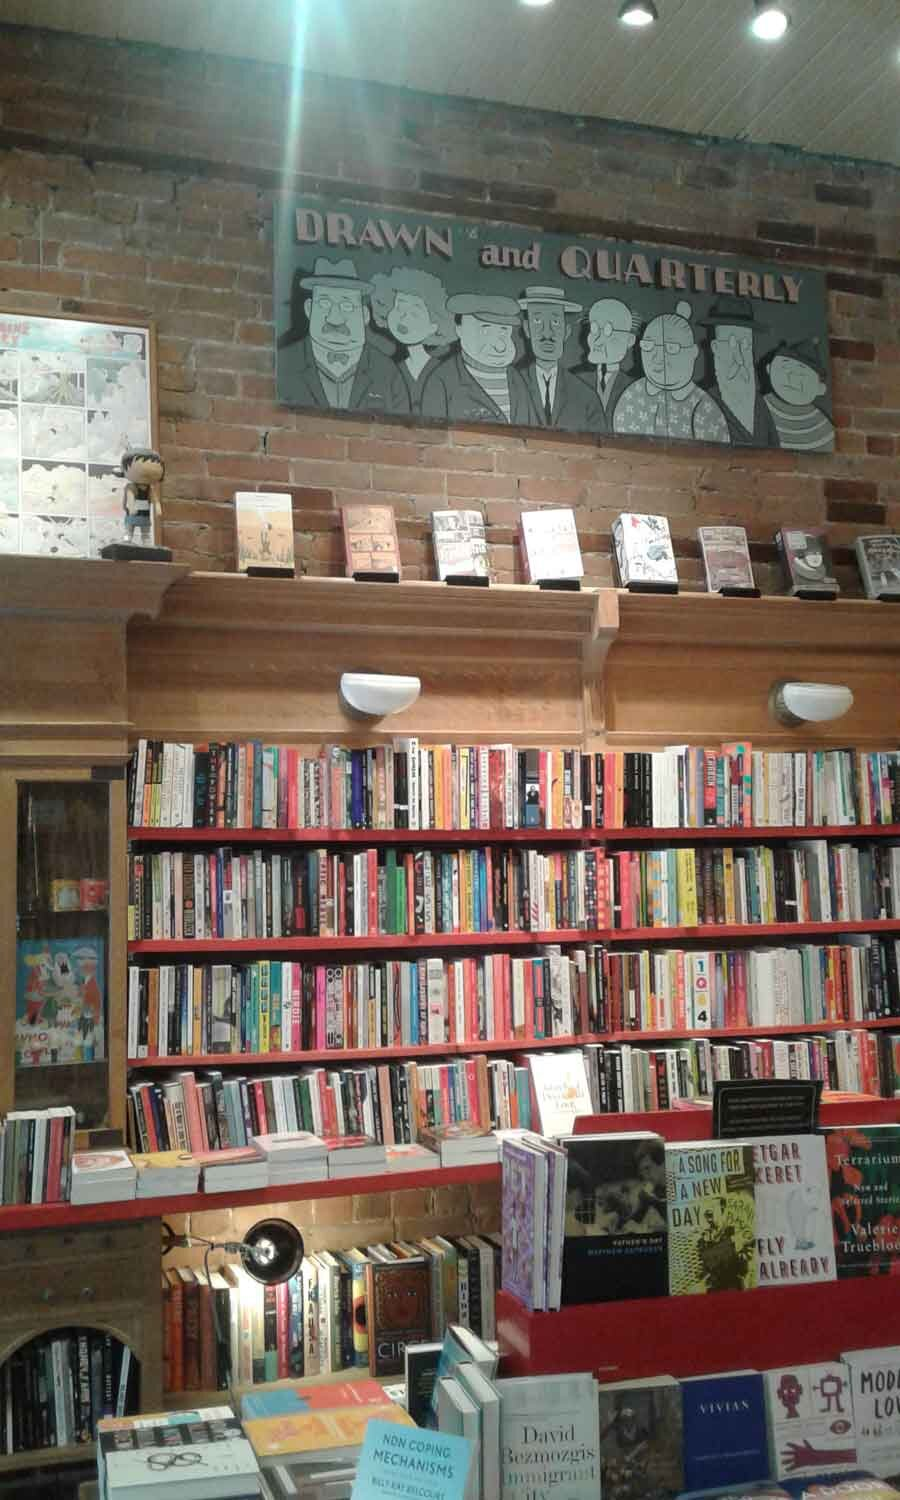 Visit to Drawn and Quarterly bookstore, Montreal